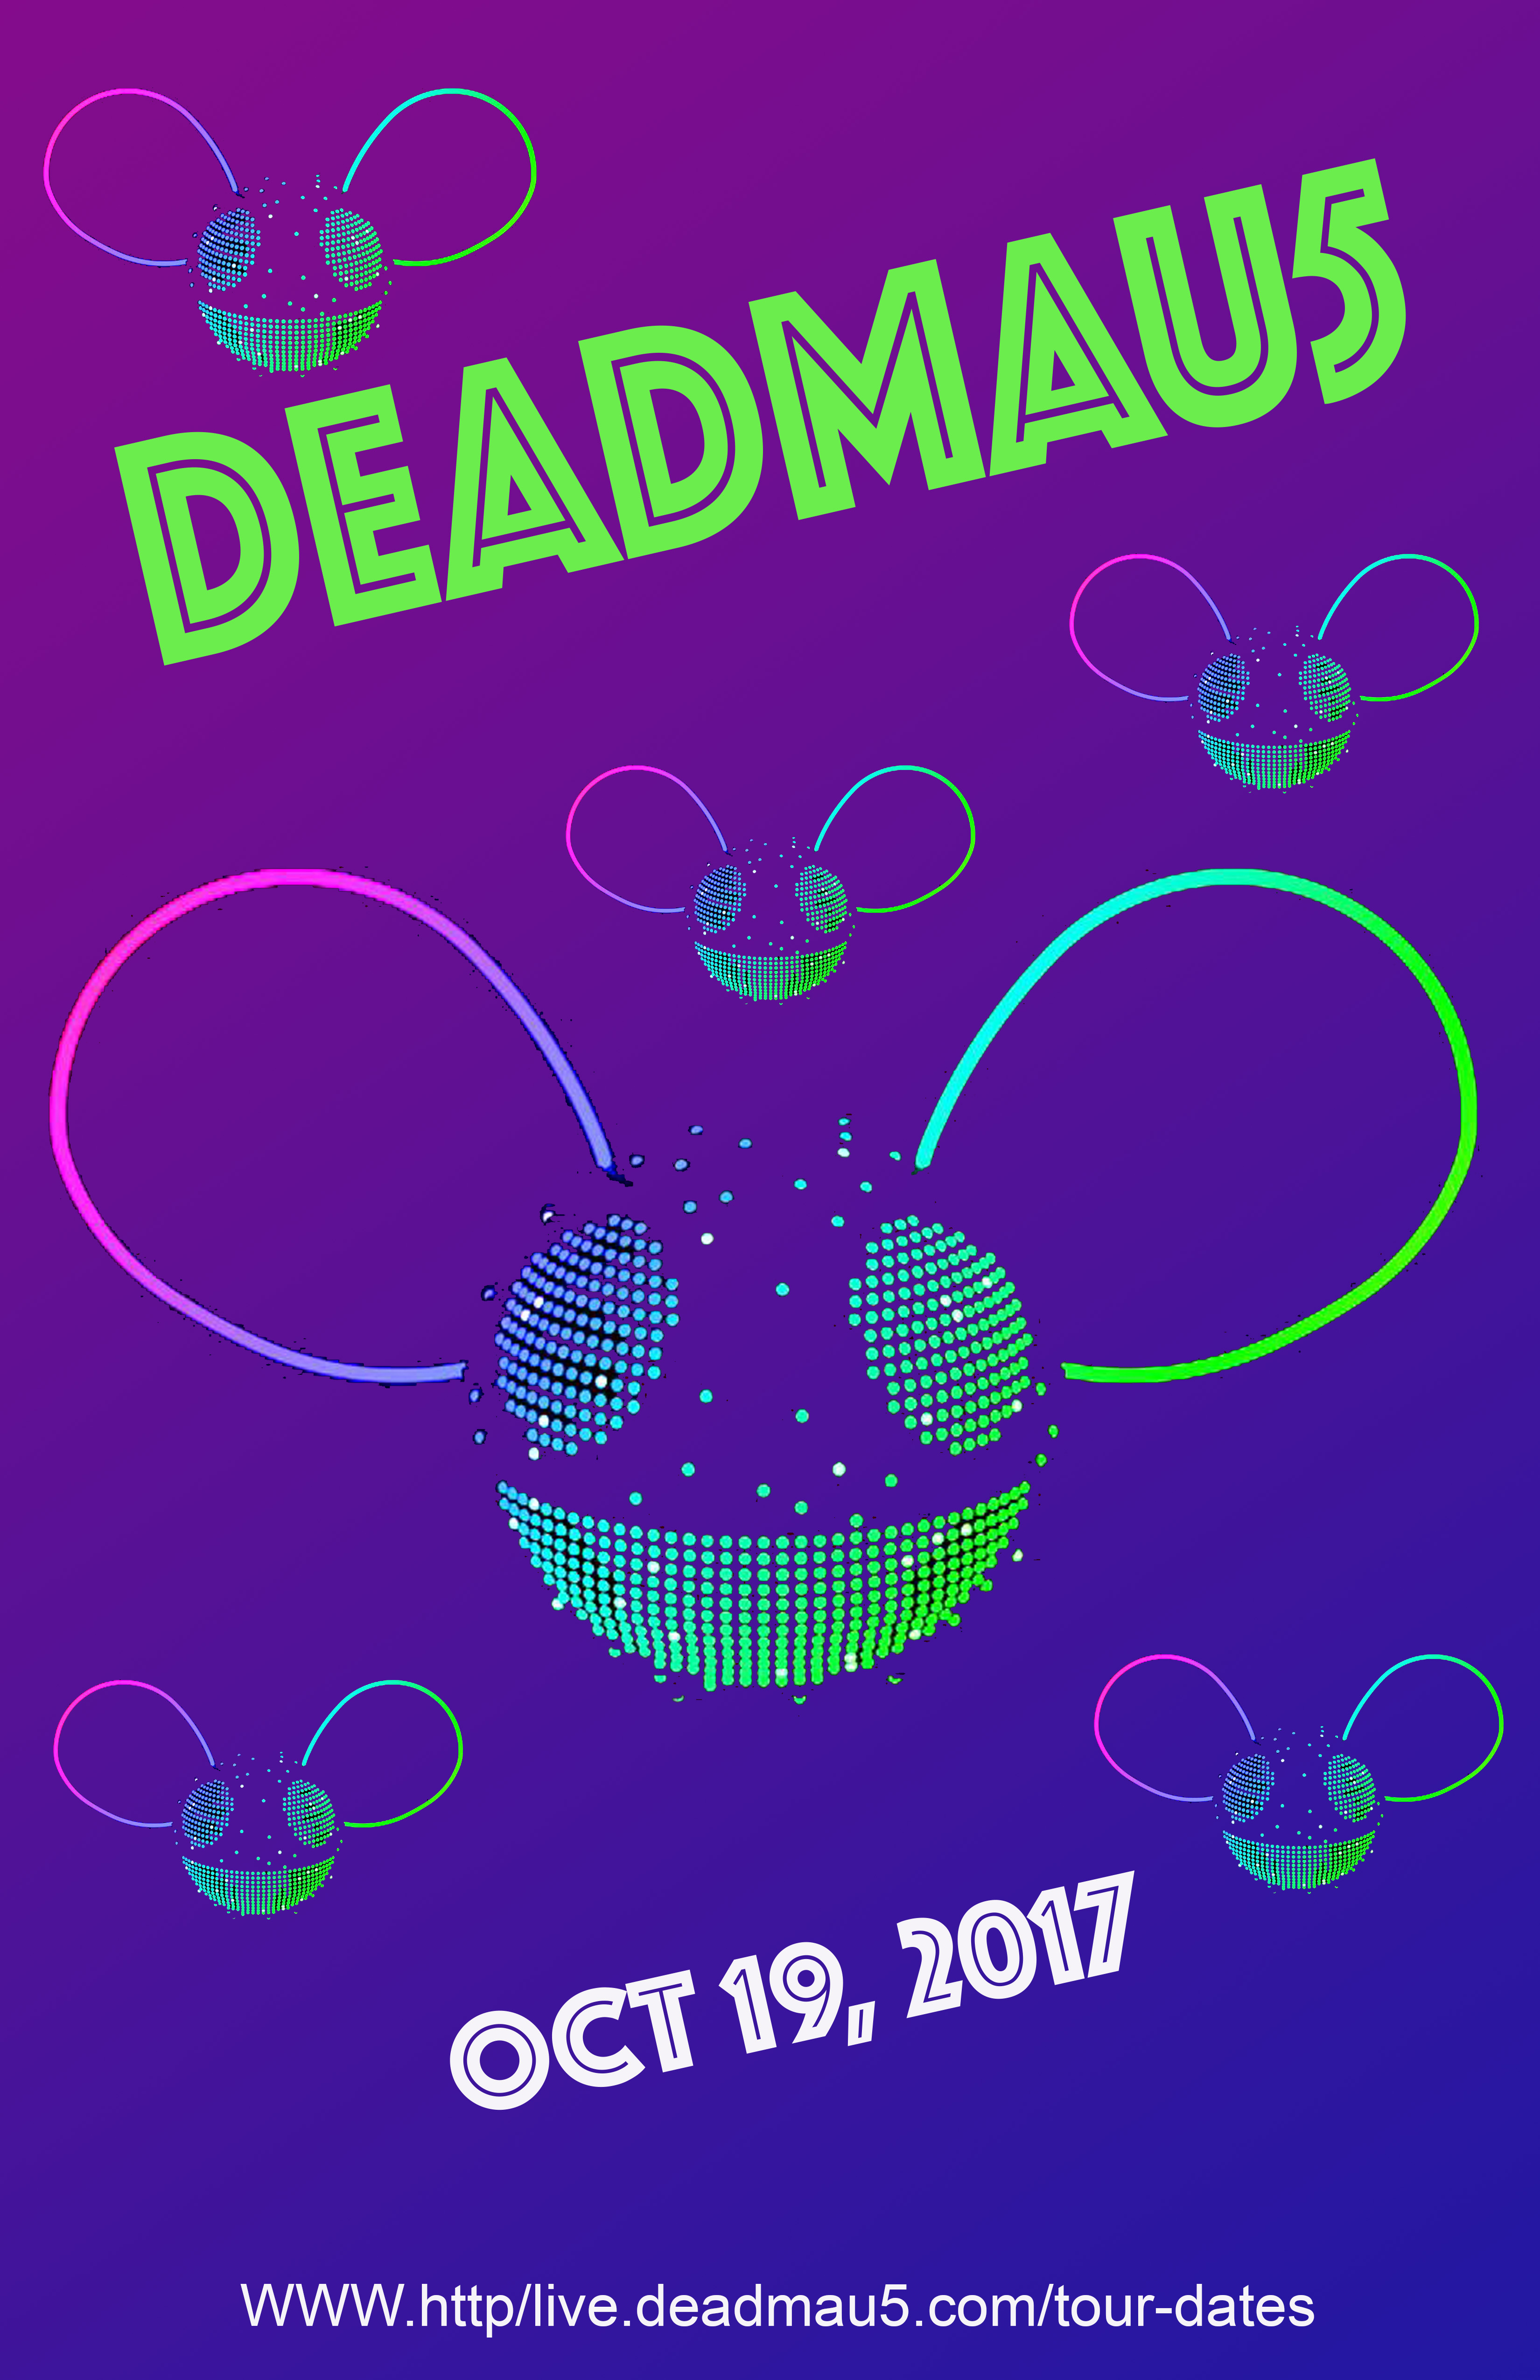 jennifer aknin art 606 DEADMAU5poster revamped flat